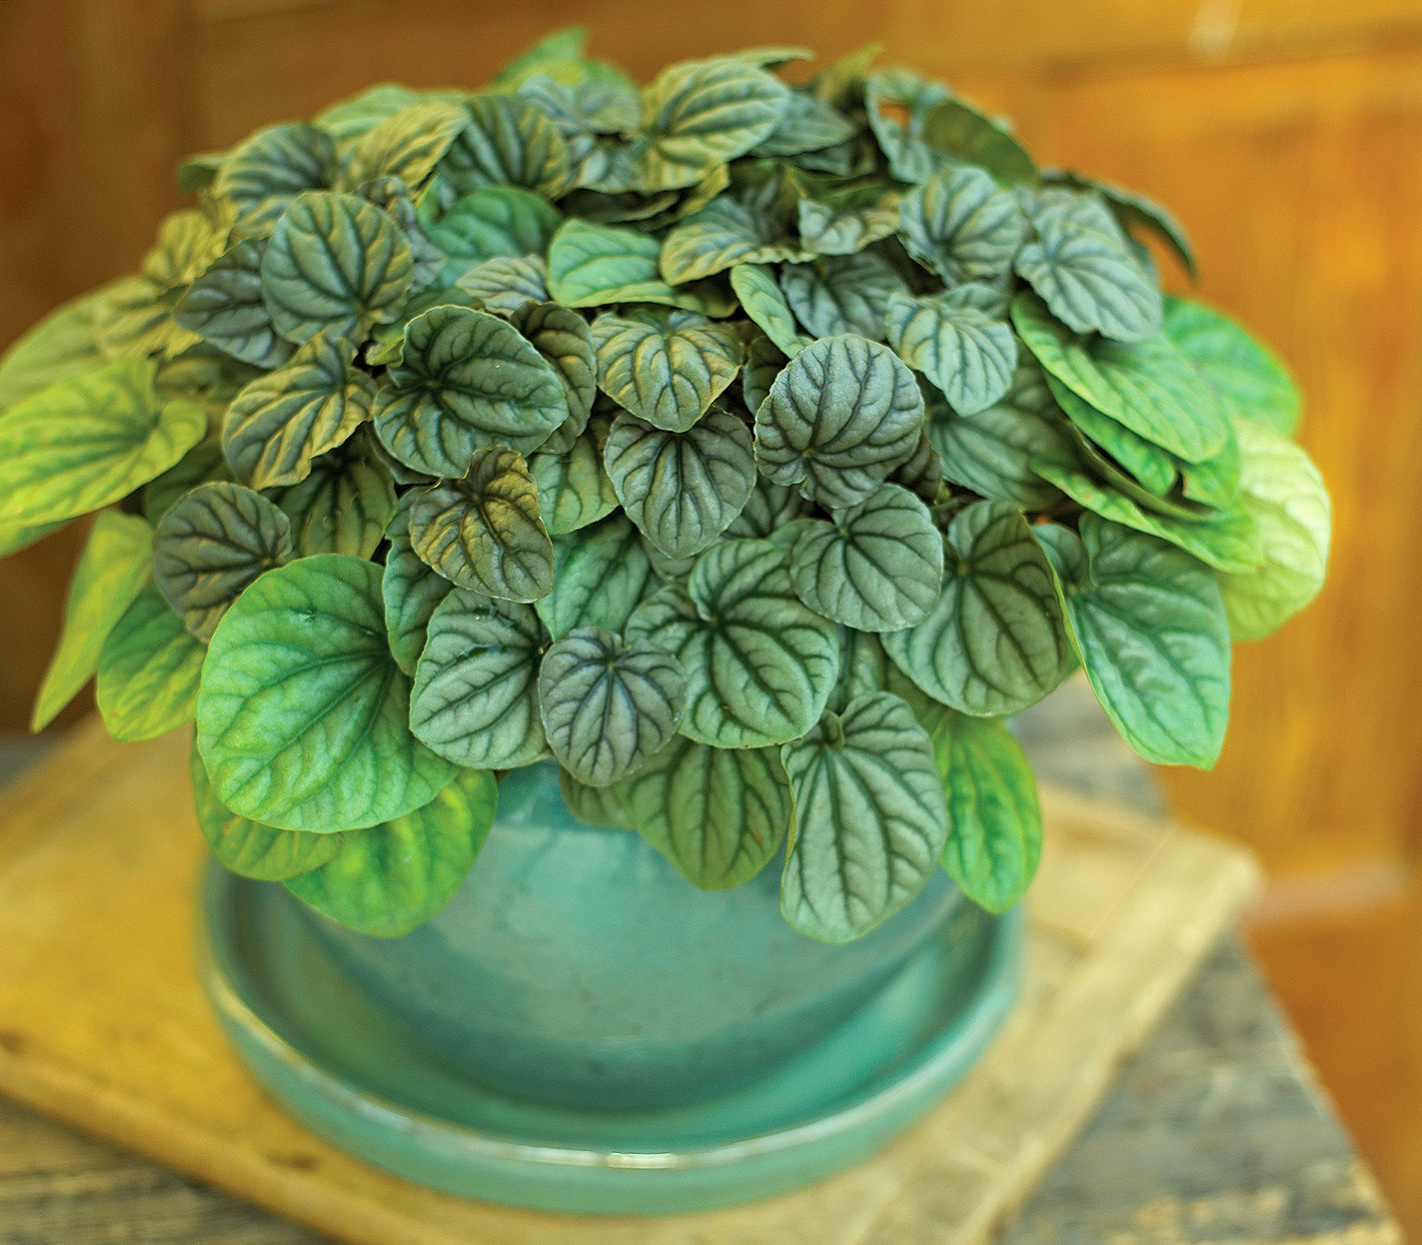 silverleaf peperomia griseoargentea with metallic silvery leaves